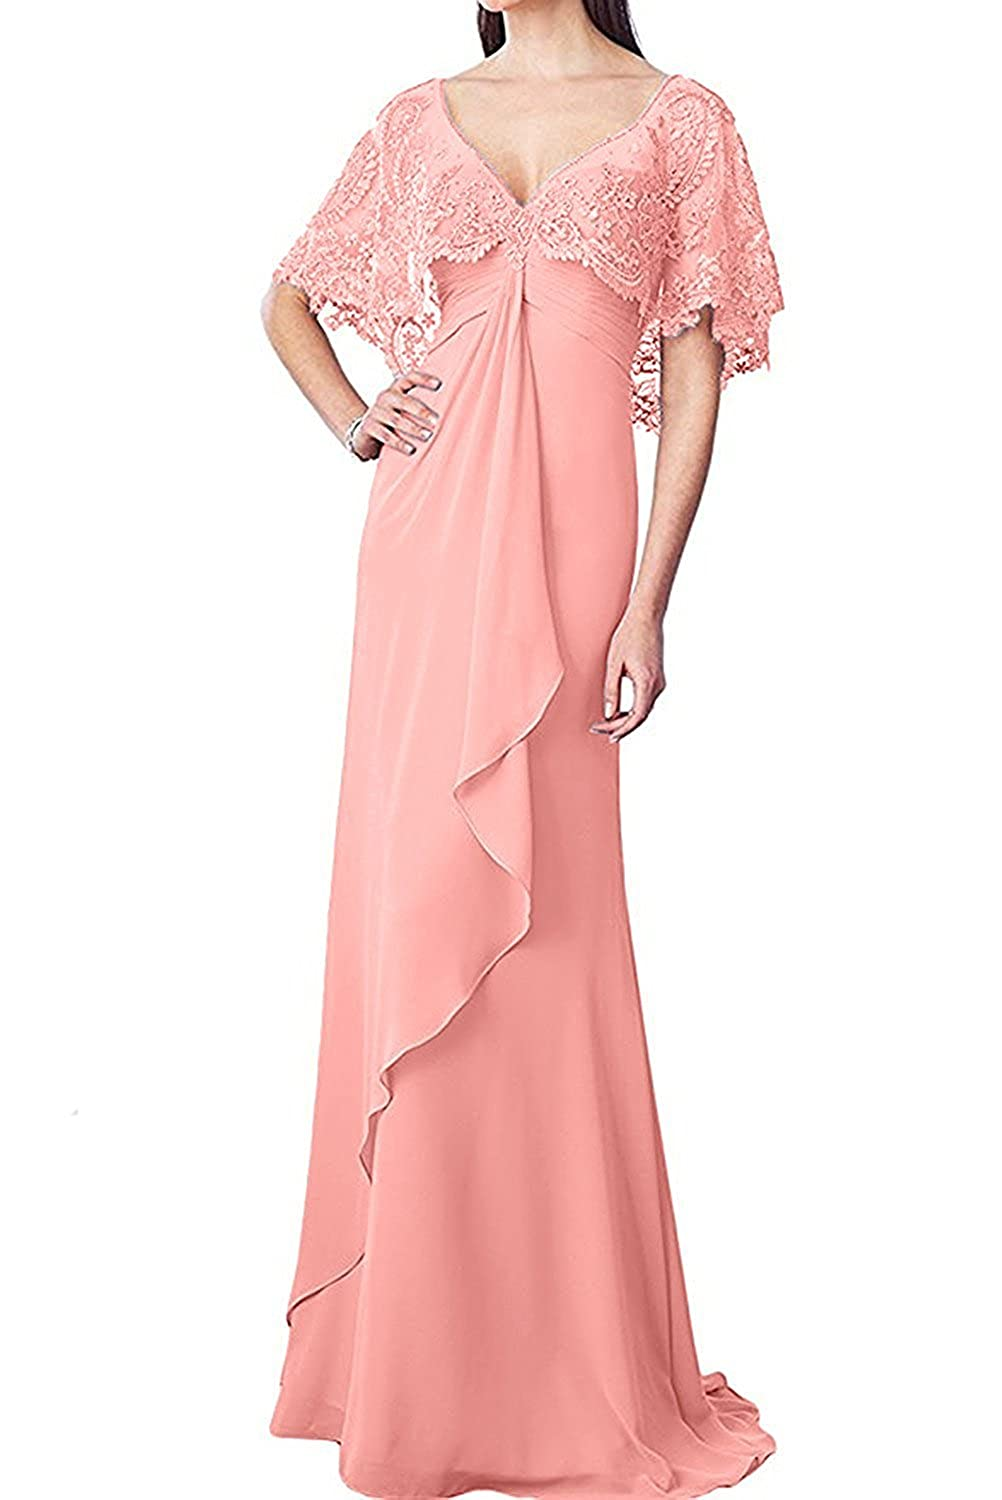 Mother of The Bride Dresses Long Evening Dress Chiffon Lace Cloak Mother Dress for Wedding